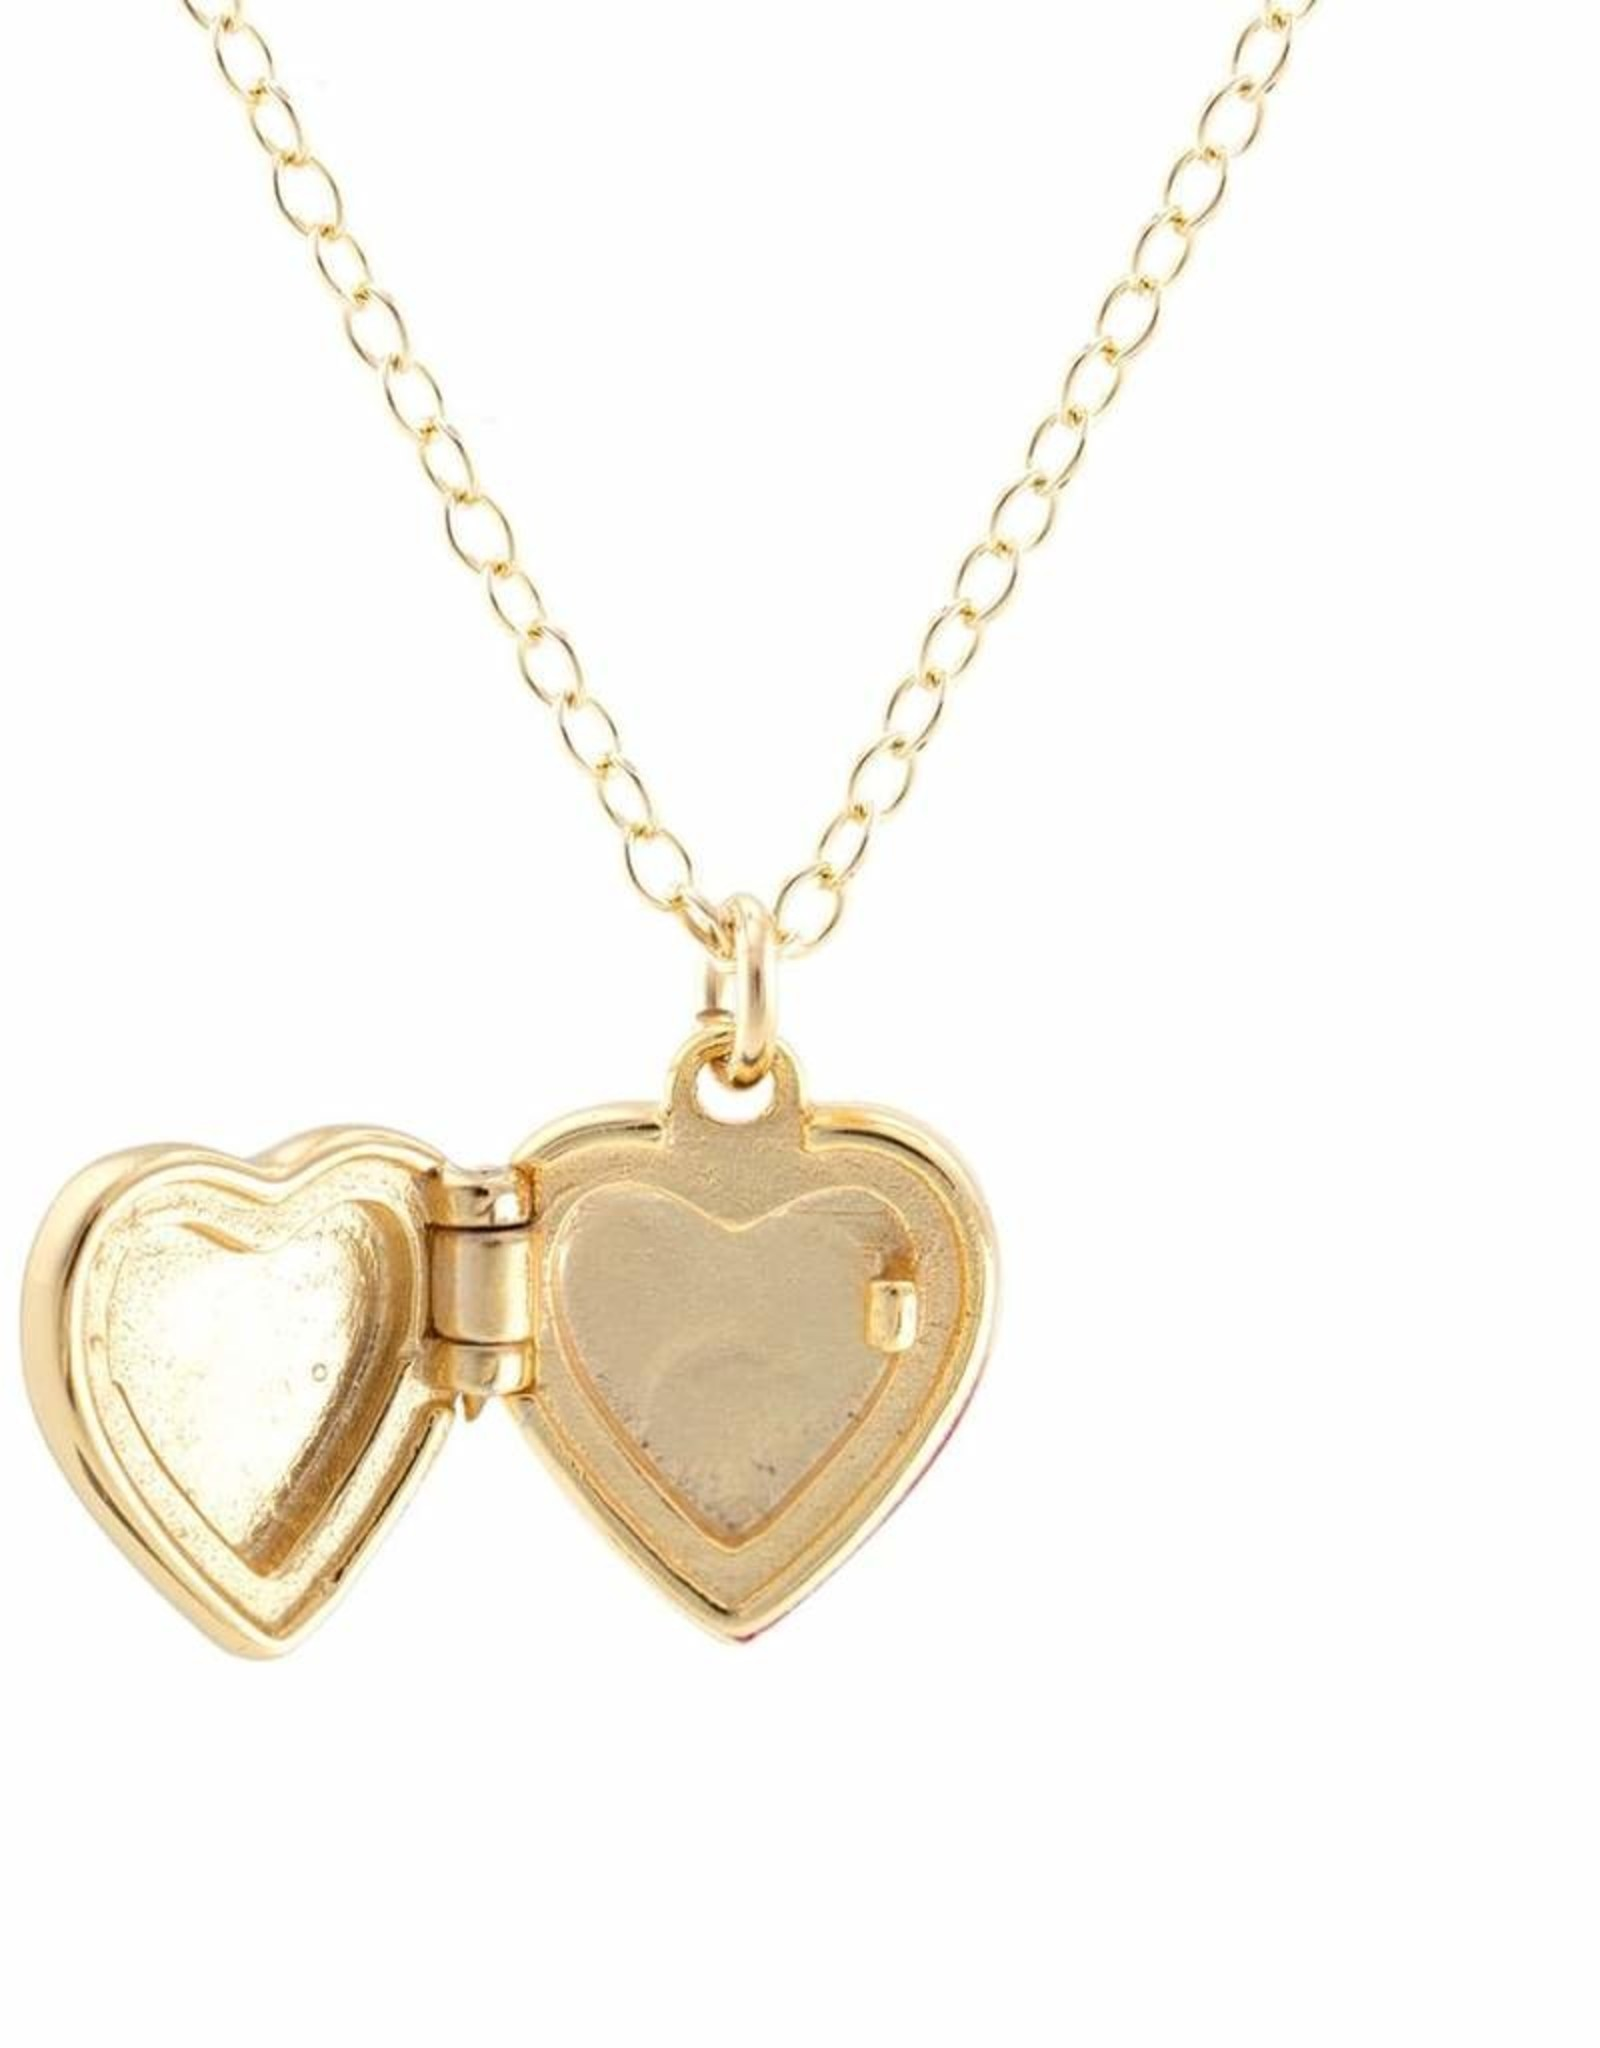 Kris Nations Small Heart Locket